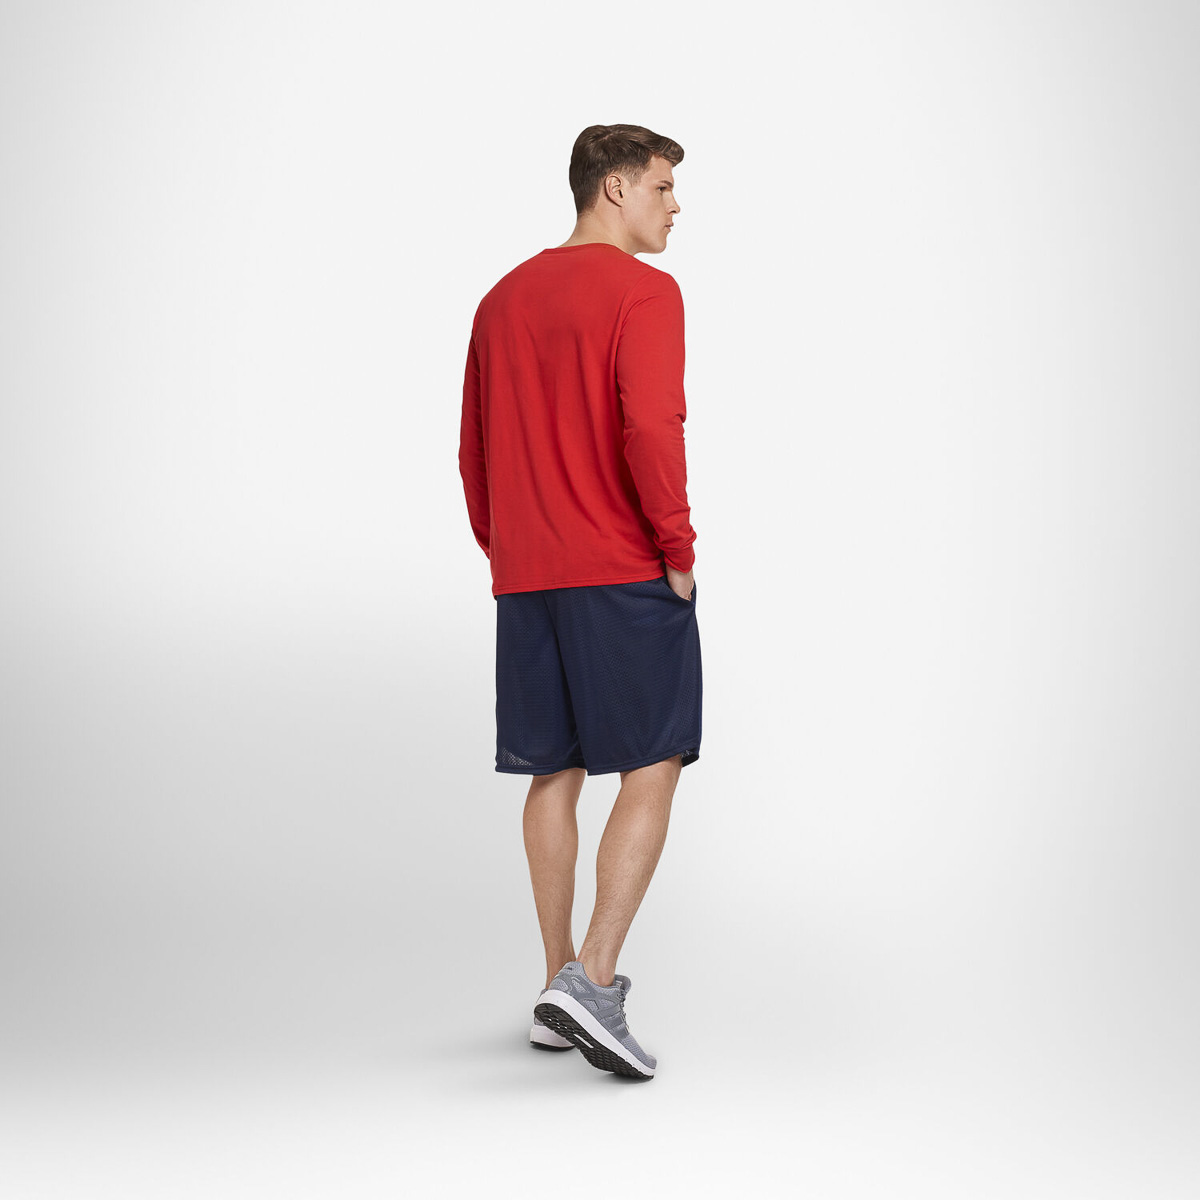 Russell-Athletic-Mens-Shorts-With-Pockets-Mesh-Moisture-Wicking-Gym-Activewear thumbnail 15